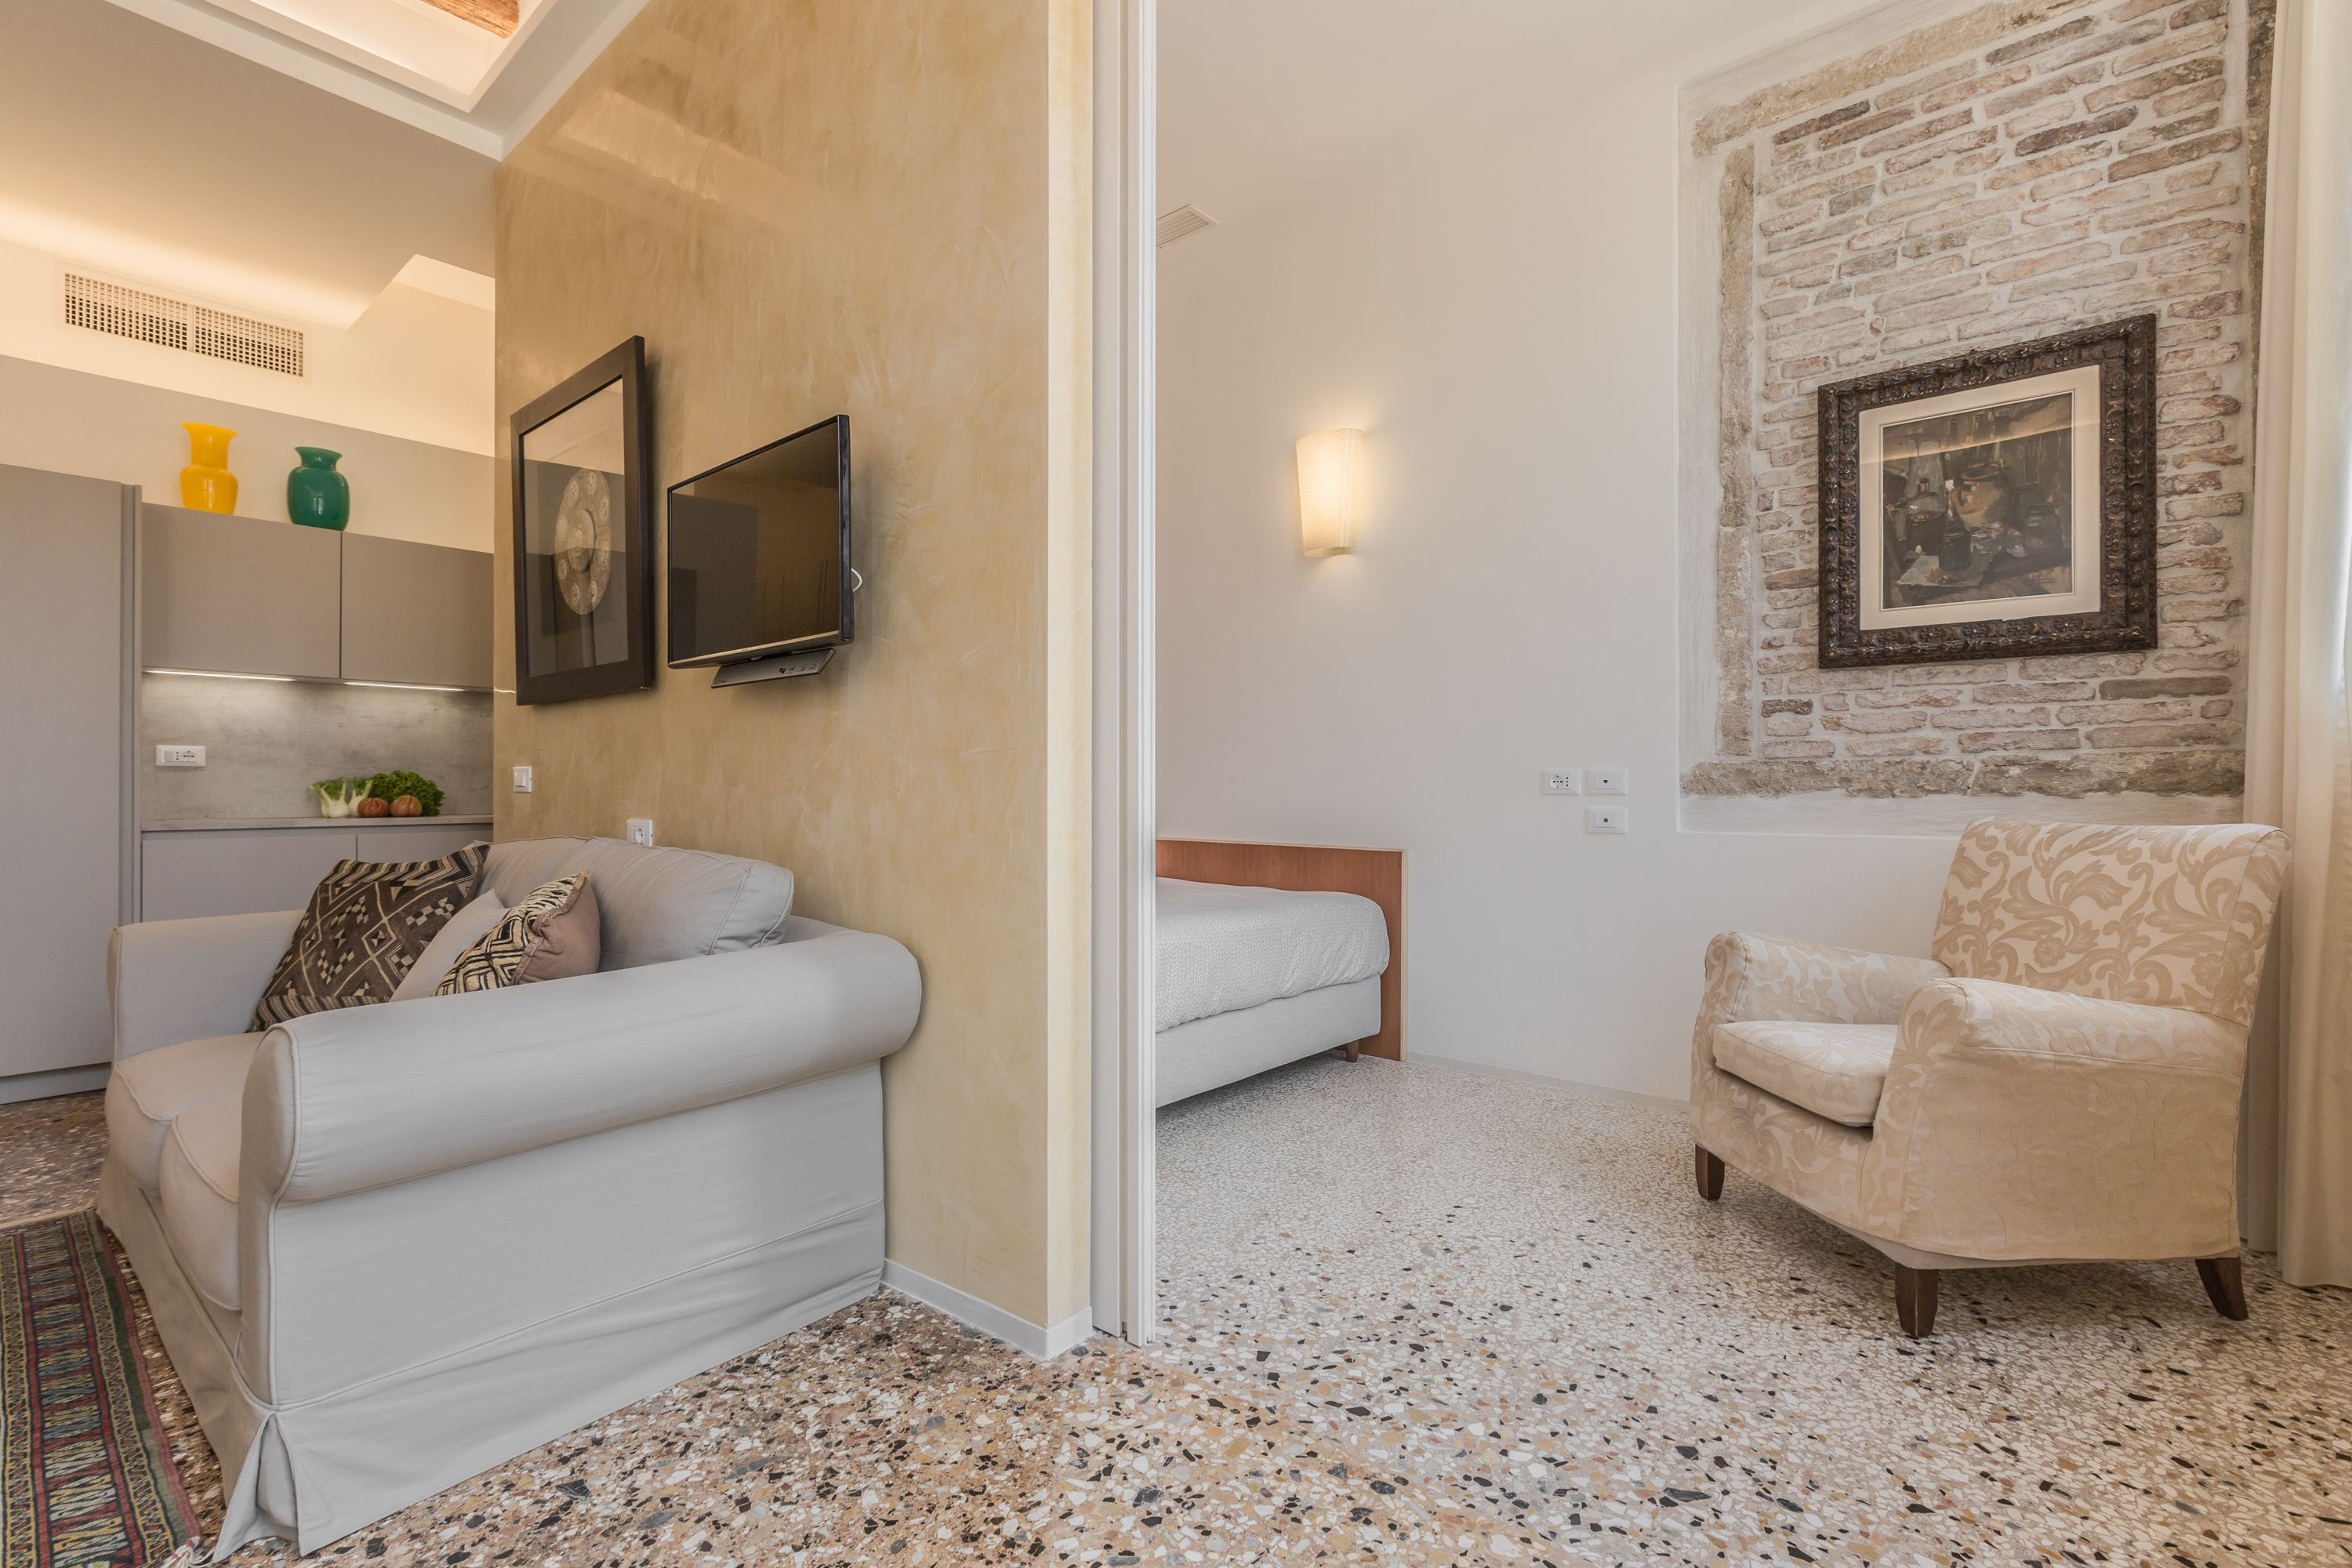 the second bedroom can be accessed through a sliding wall in the living room